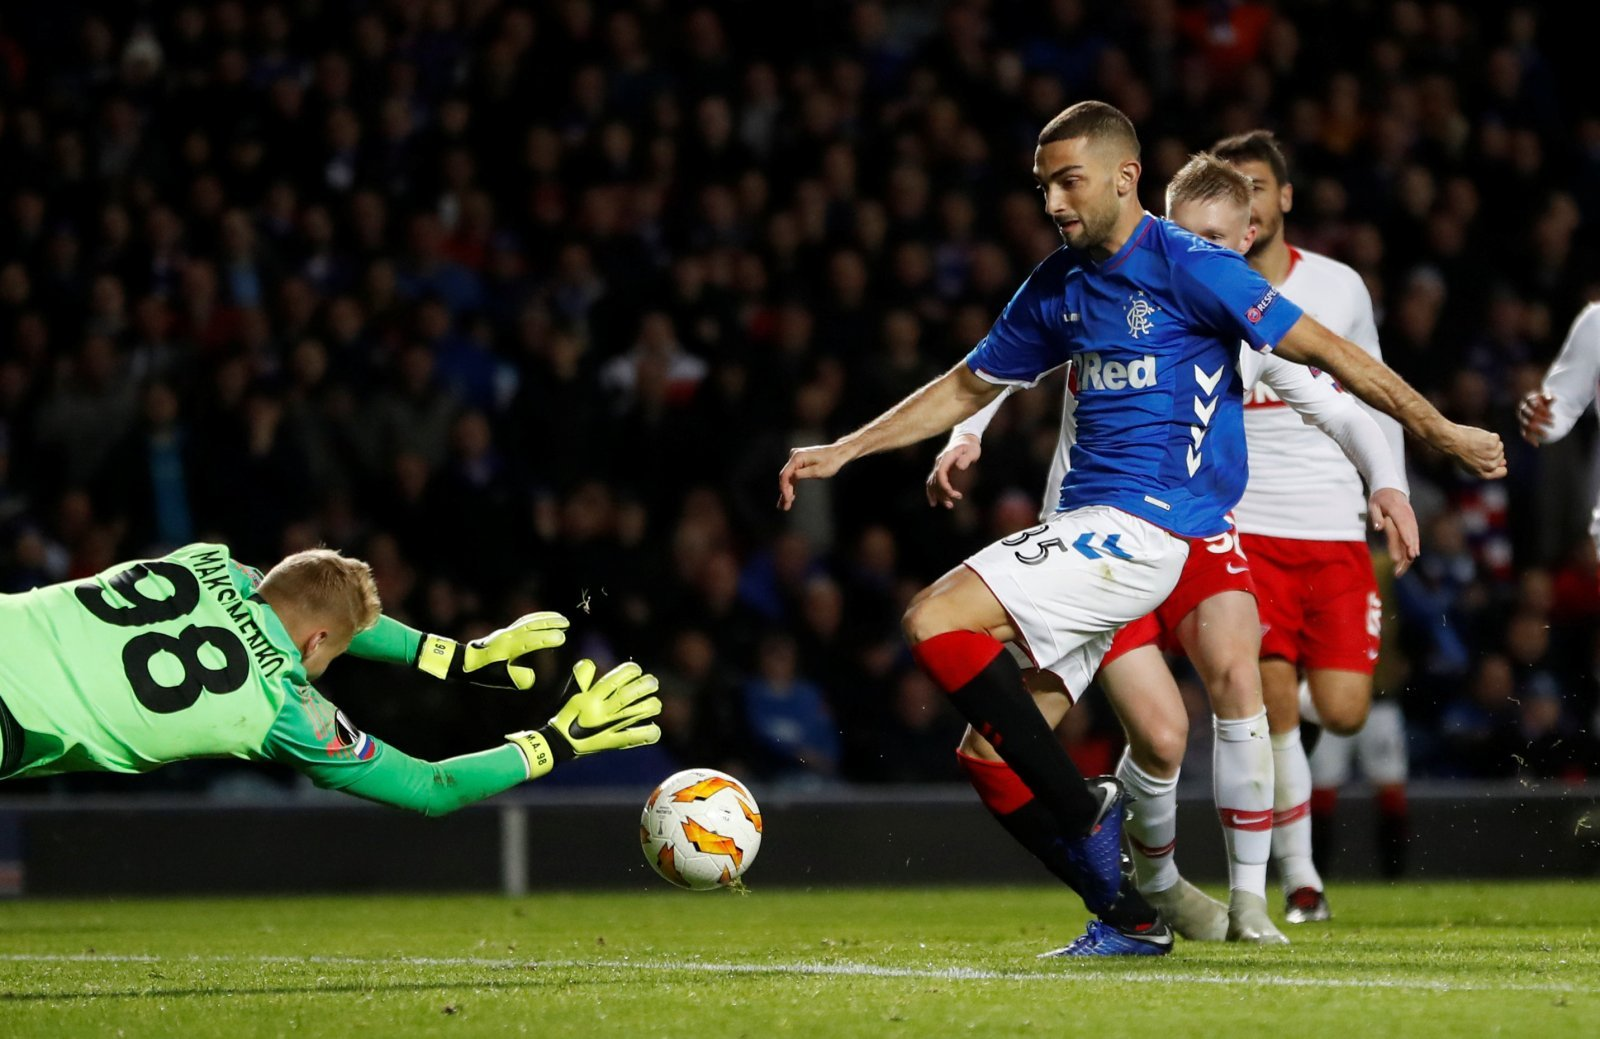 Rangers signing Hastie could force Grezda to consider future